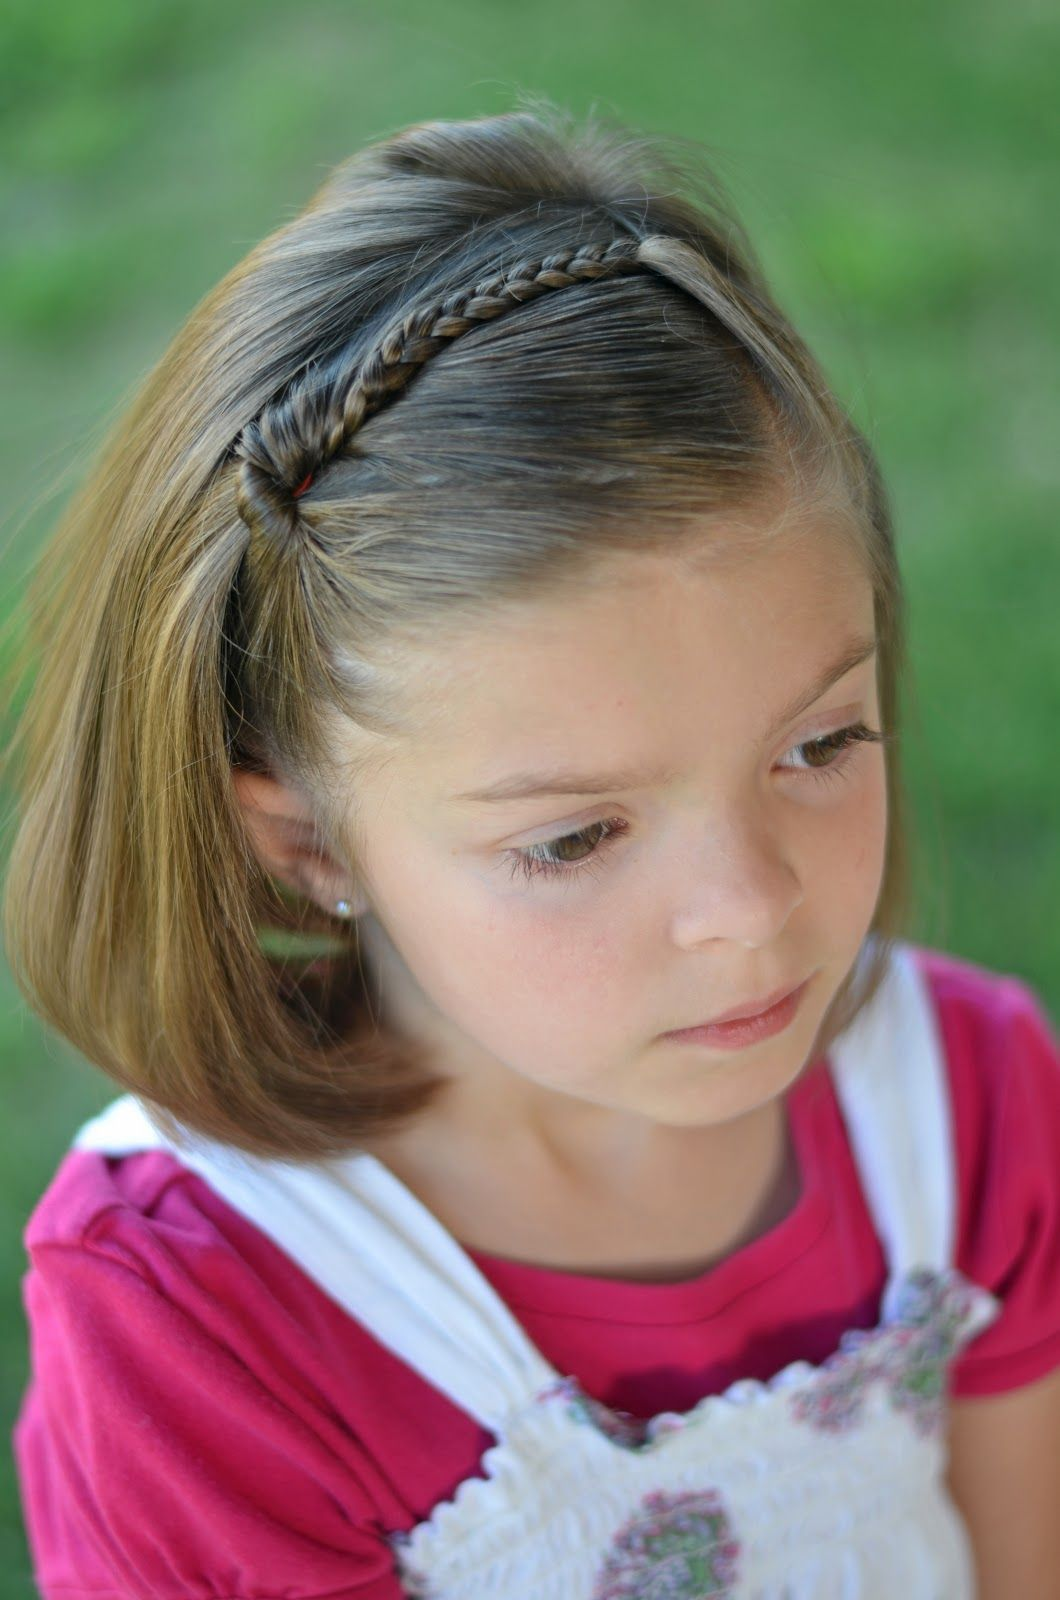 Braid On Pony Short Hairstyle With Images Short Hair For Kids